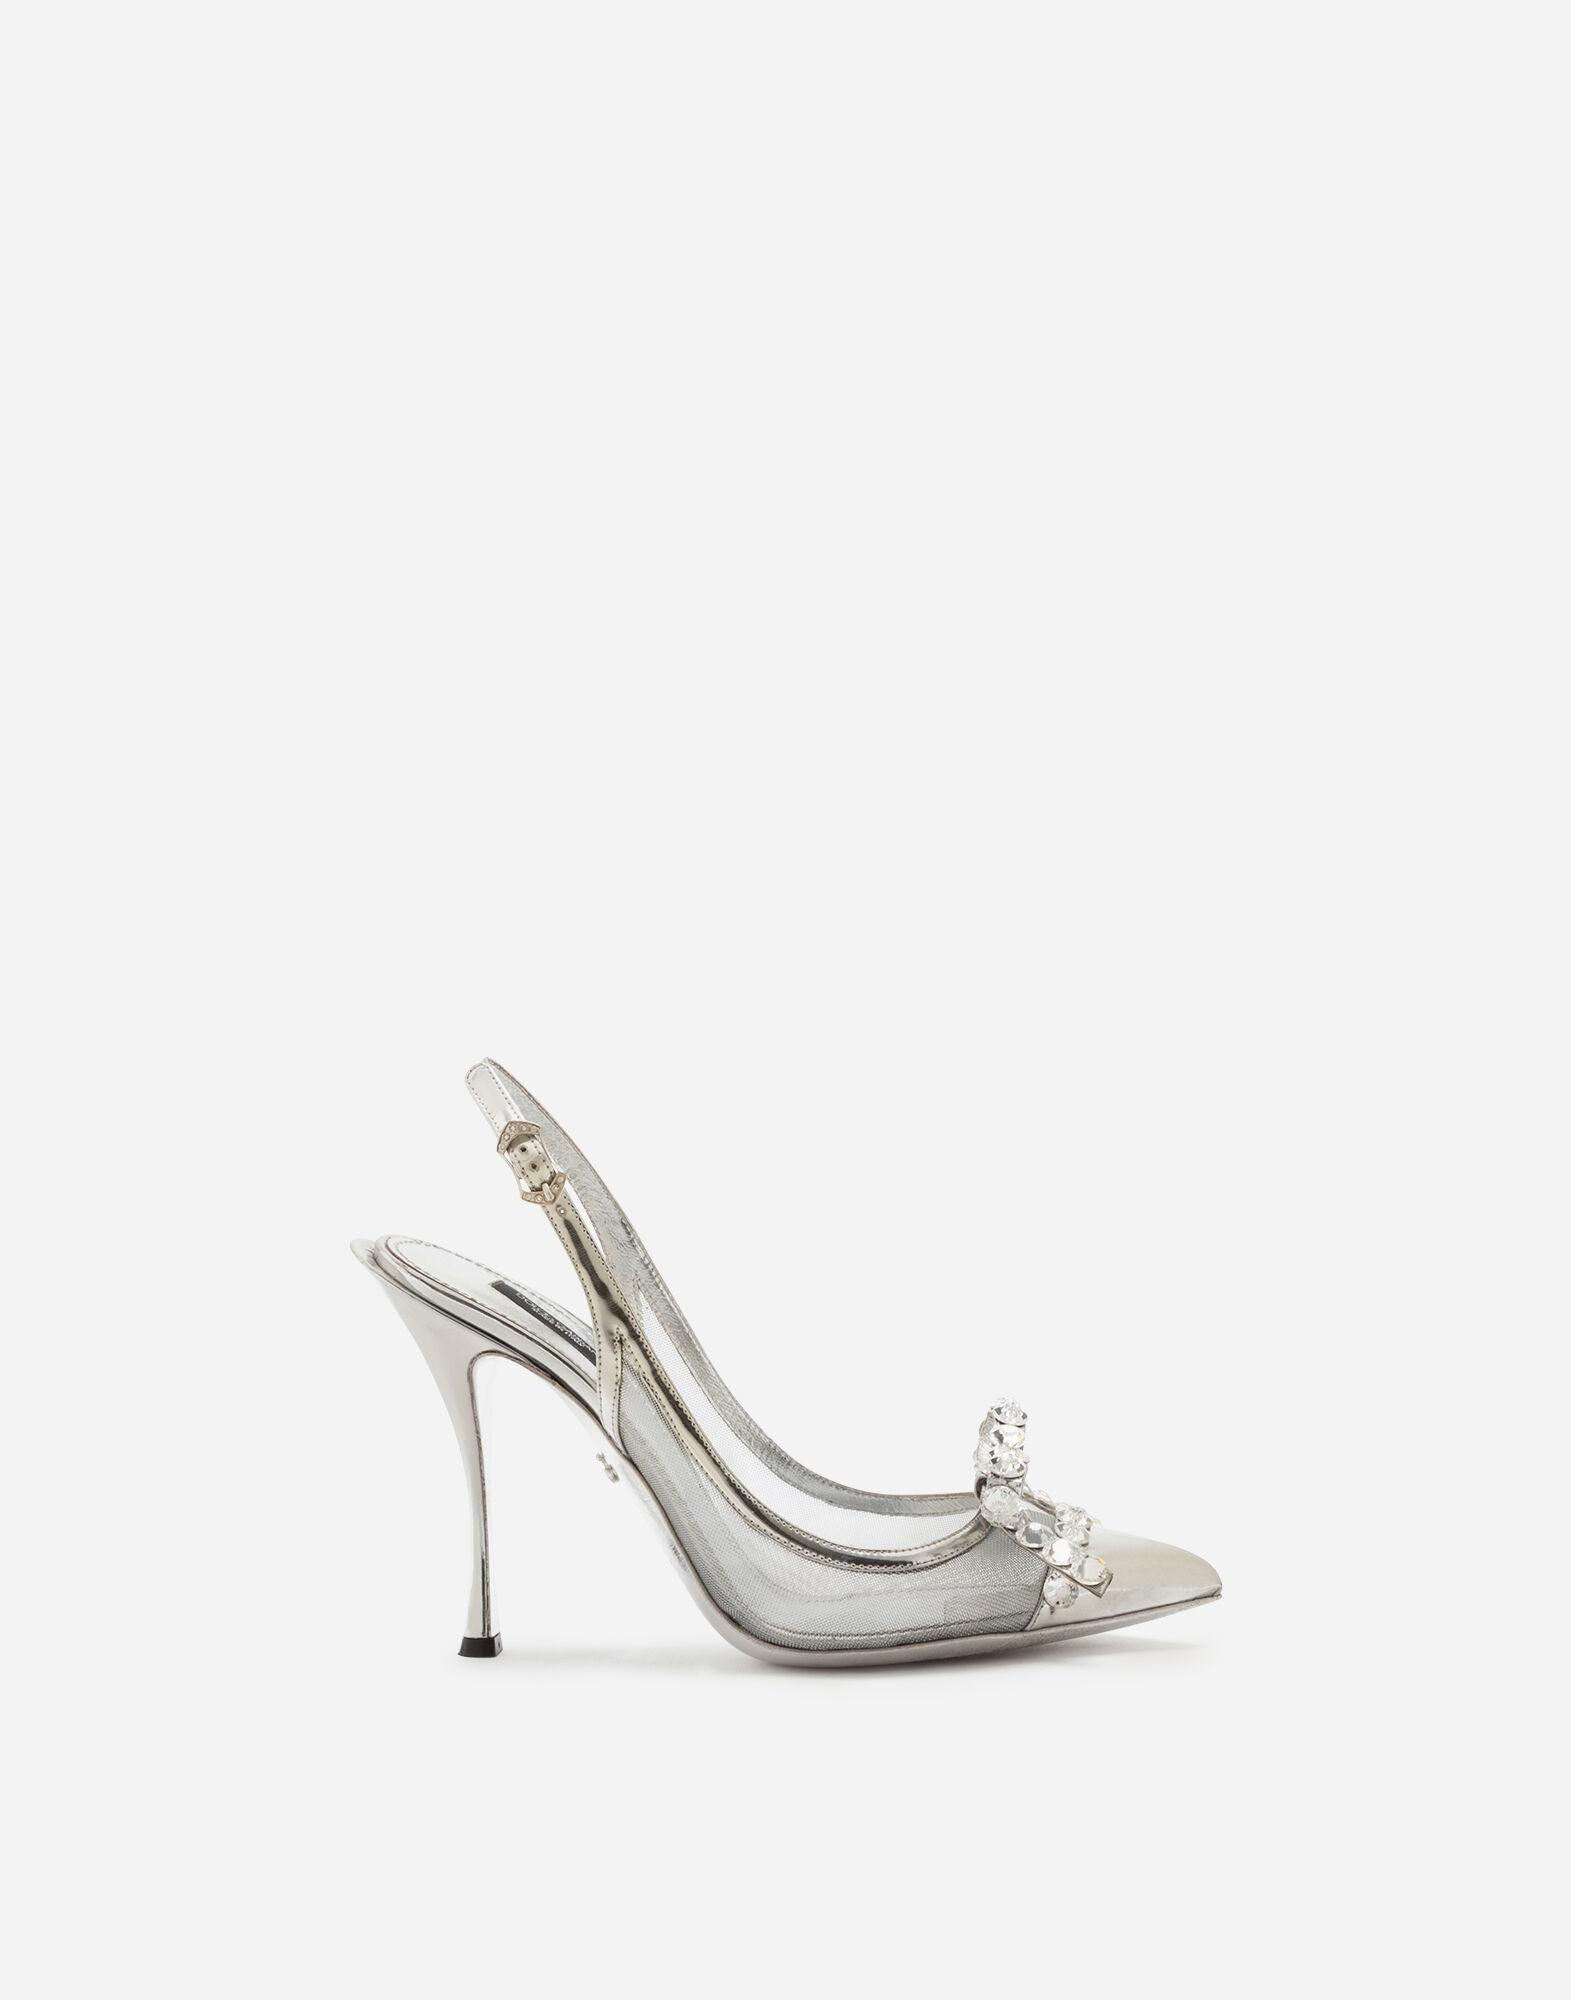 Mesh sling back with bejeweled bow